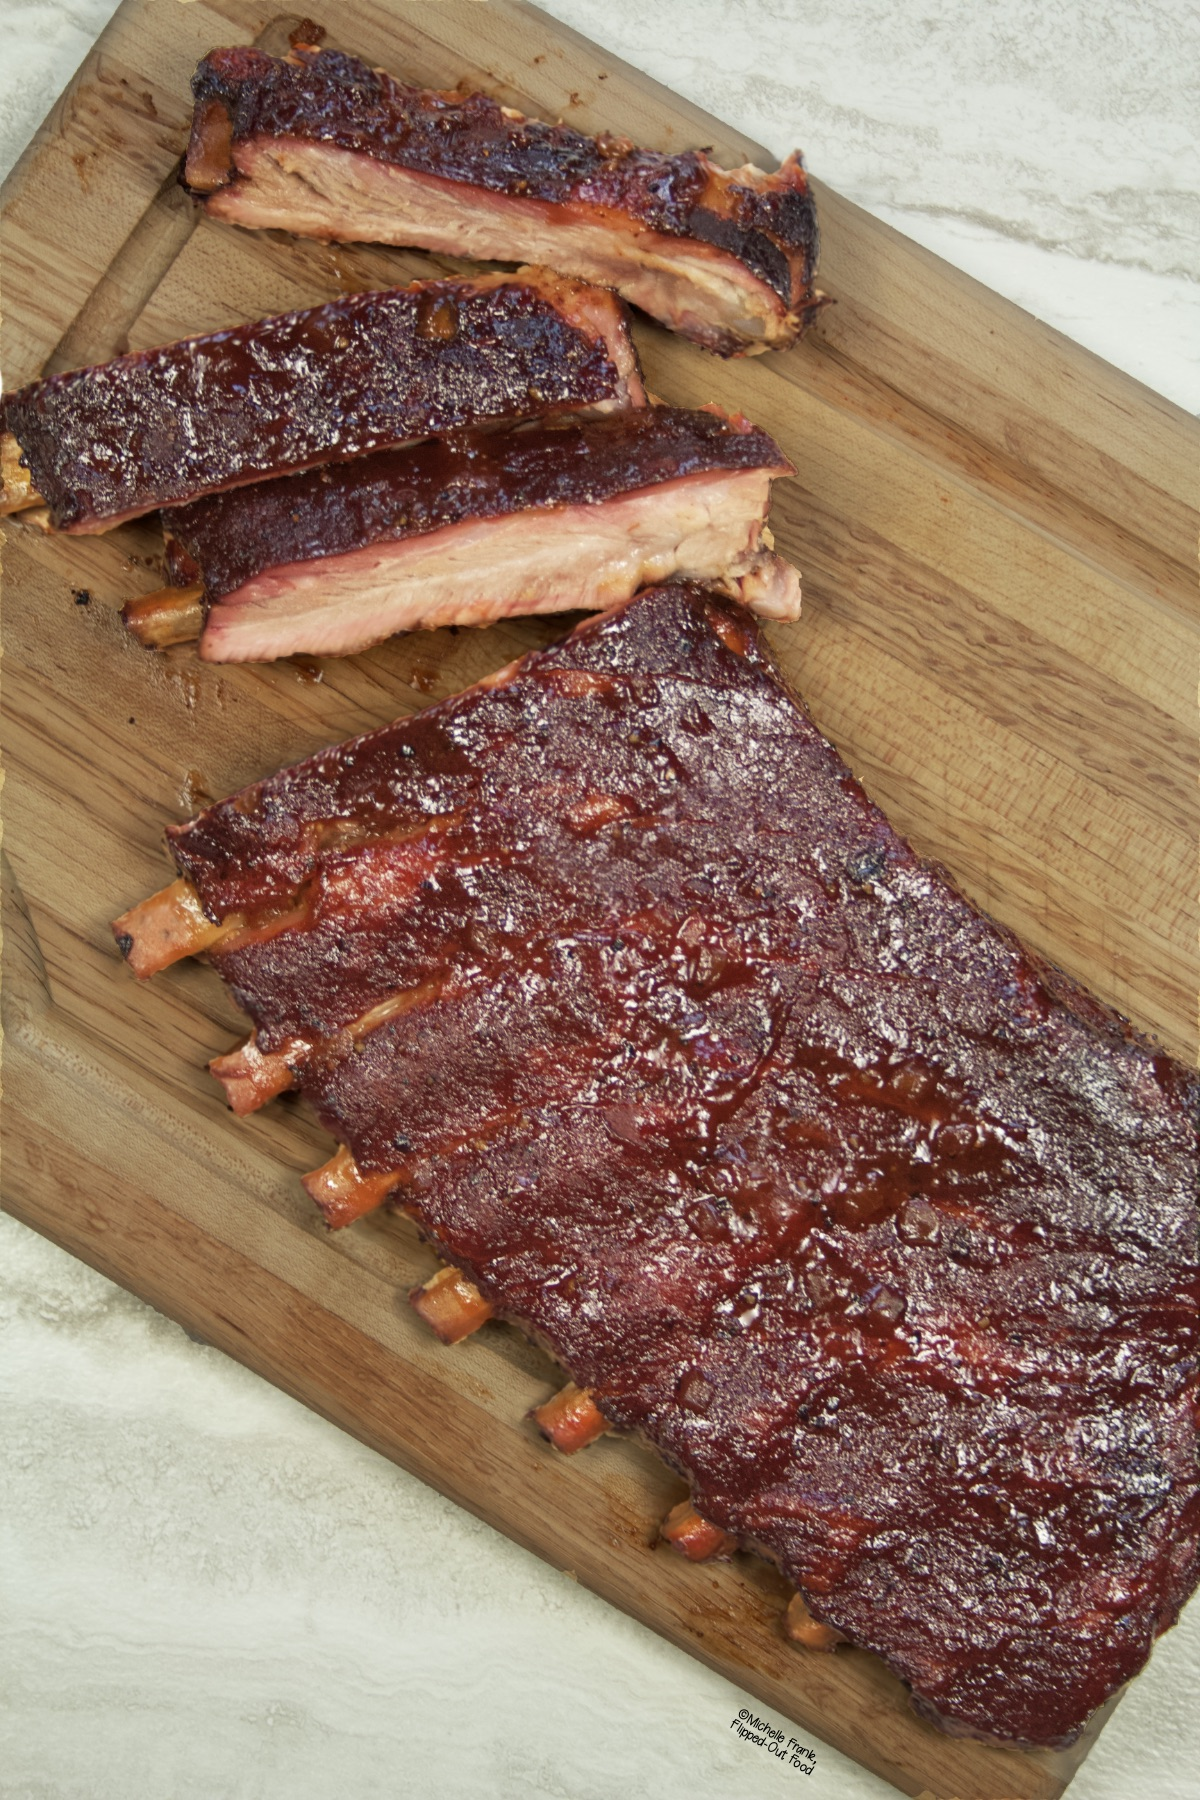 Side view of a partially cut rack of ribs that have been smoked on a charcoal grill, positioned on a cutting board